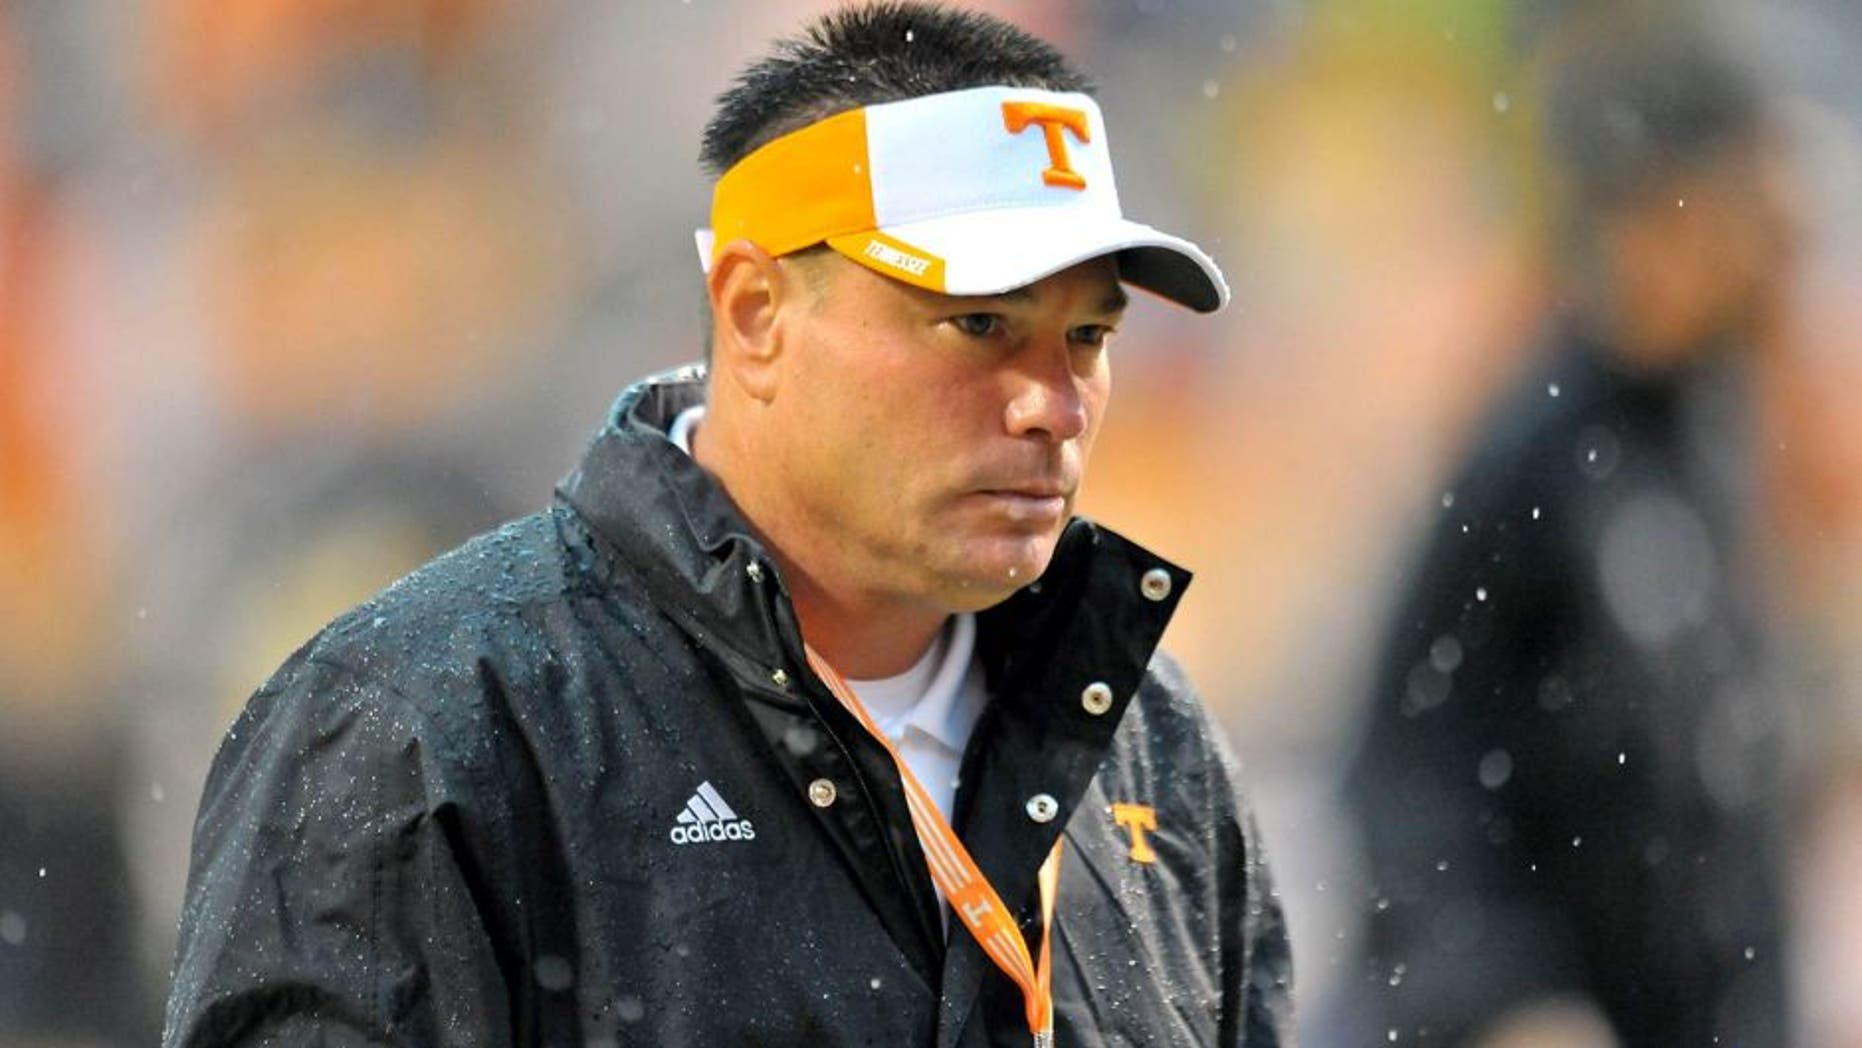 Aug 31, 2014; Knoxville, TN, USA; Tennessee Volunteers head coach Butch Jones leaves the field after warm ups prior to the game against the Utah State Aggies at Neyland Stadium. Mandatory Credit: Jim Brown-USA TODAY Sports